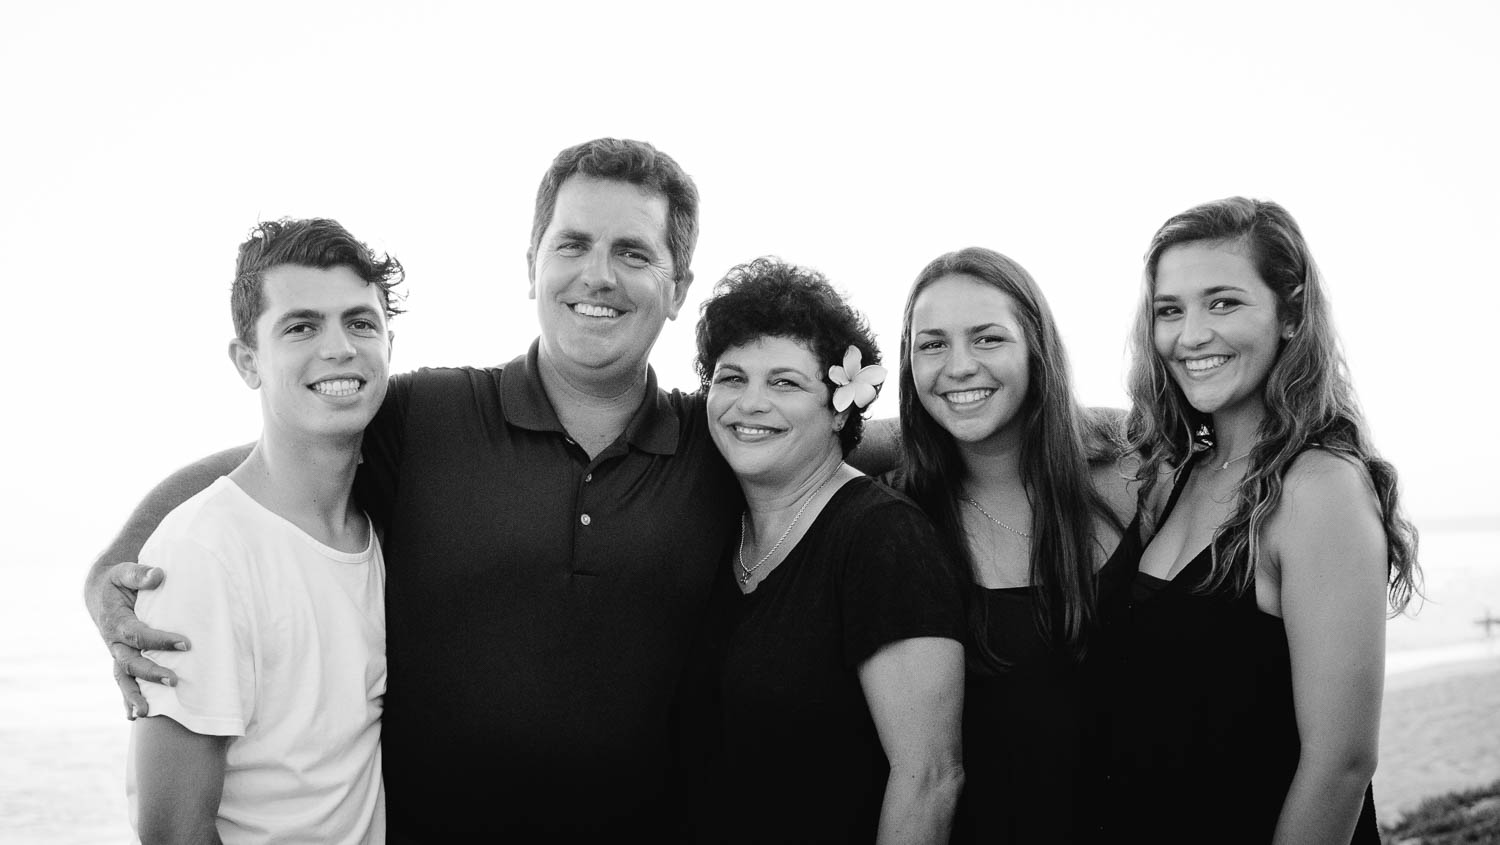 Biss_Family_2015 (7 of 8).jpg